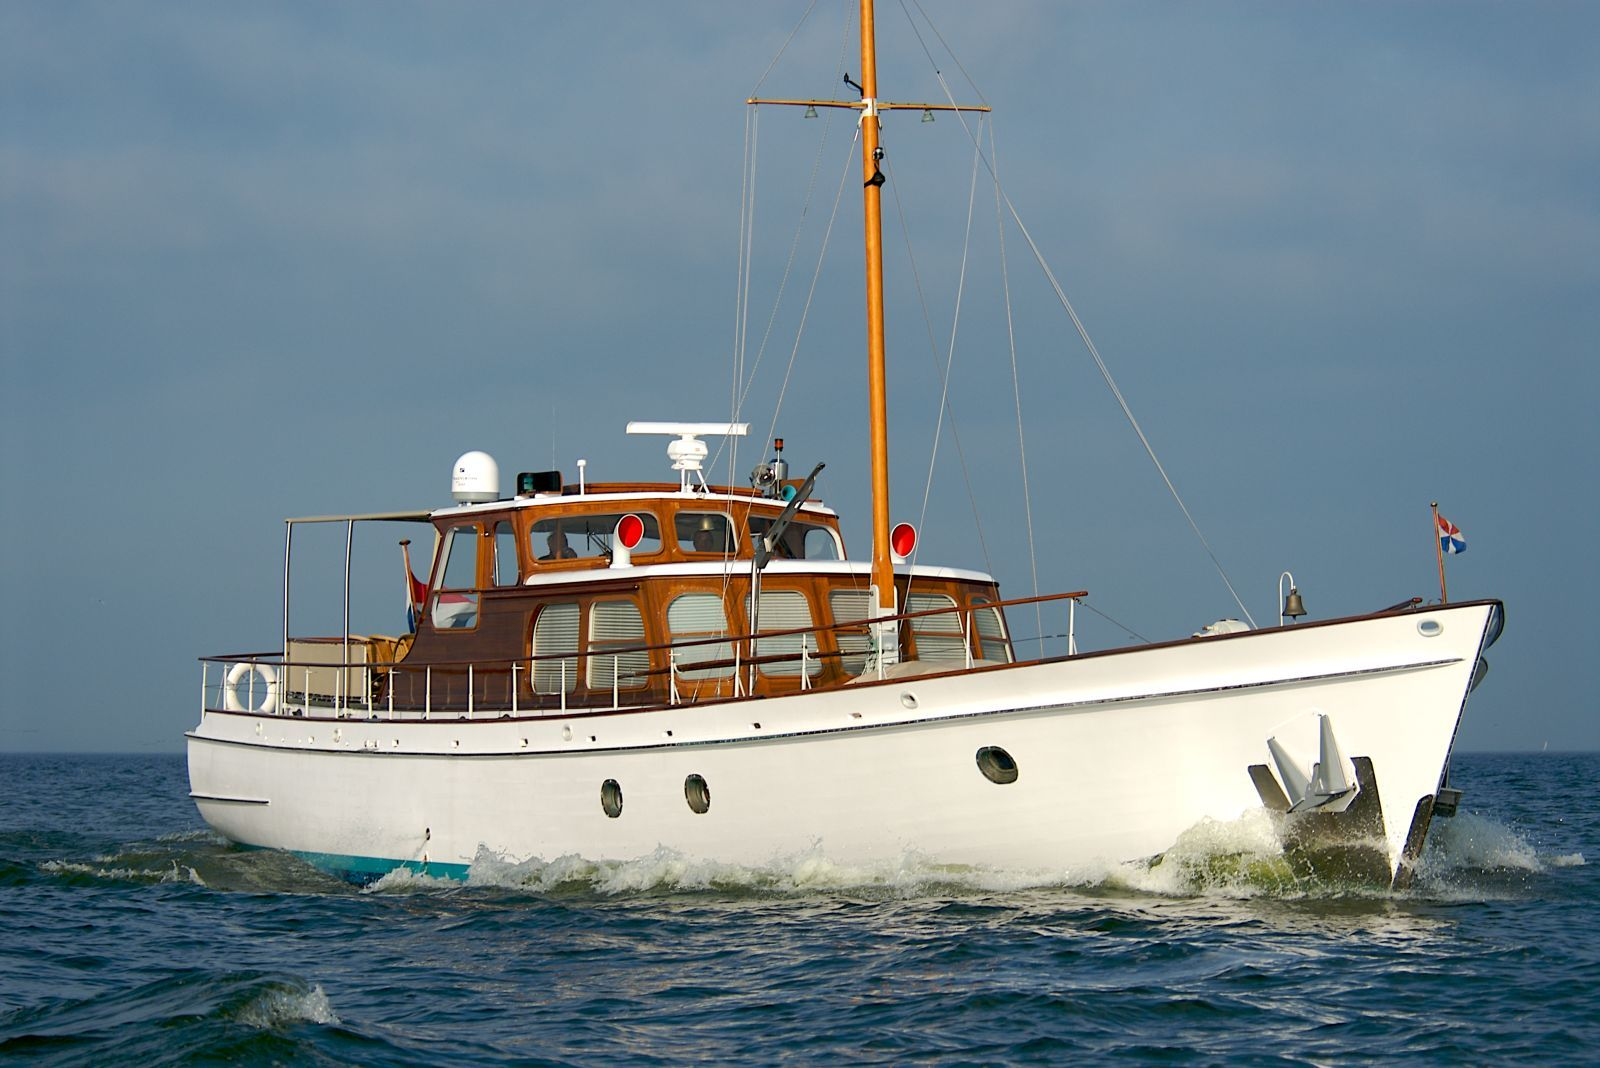 Atalanta 82 39 feadship motor yacht built in 1958 and for Vintage motor yachts for sale